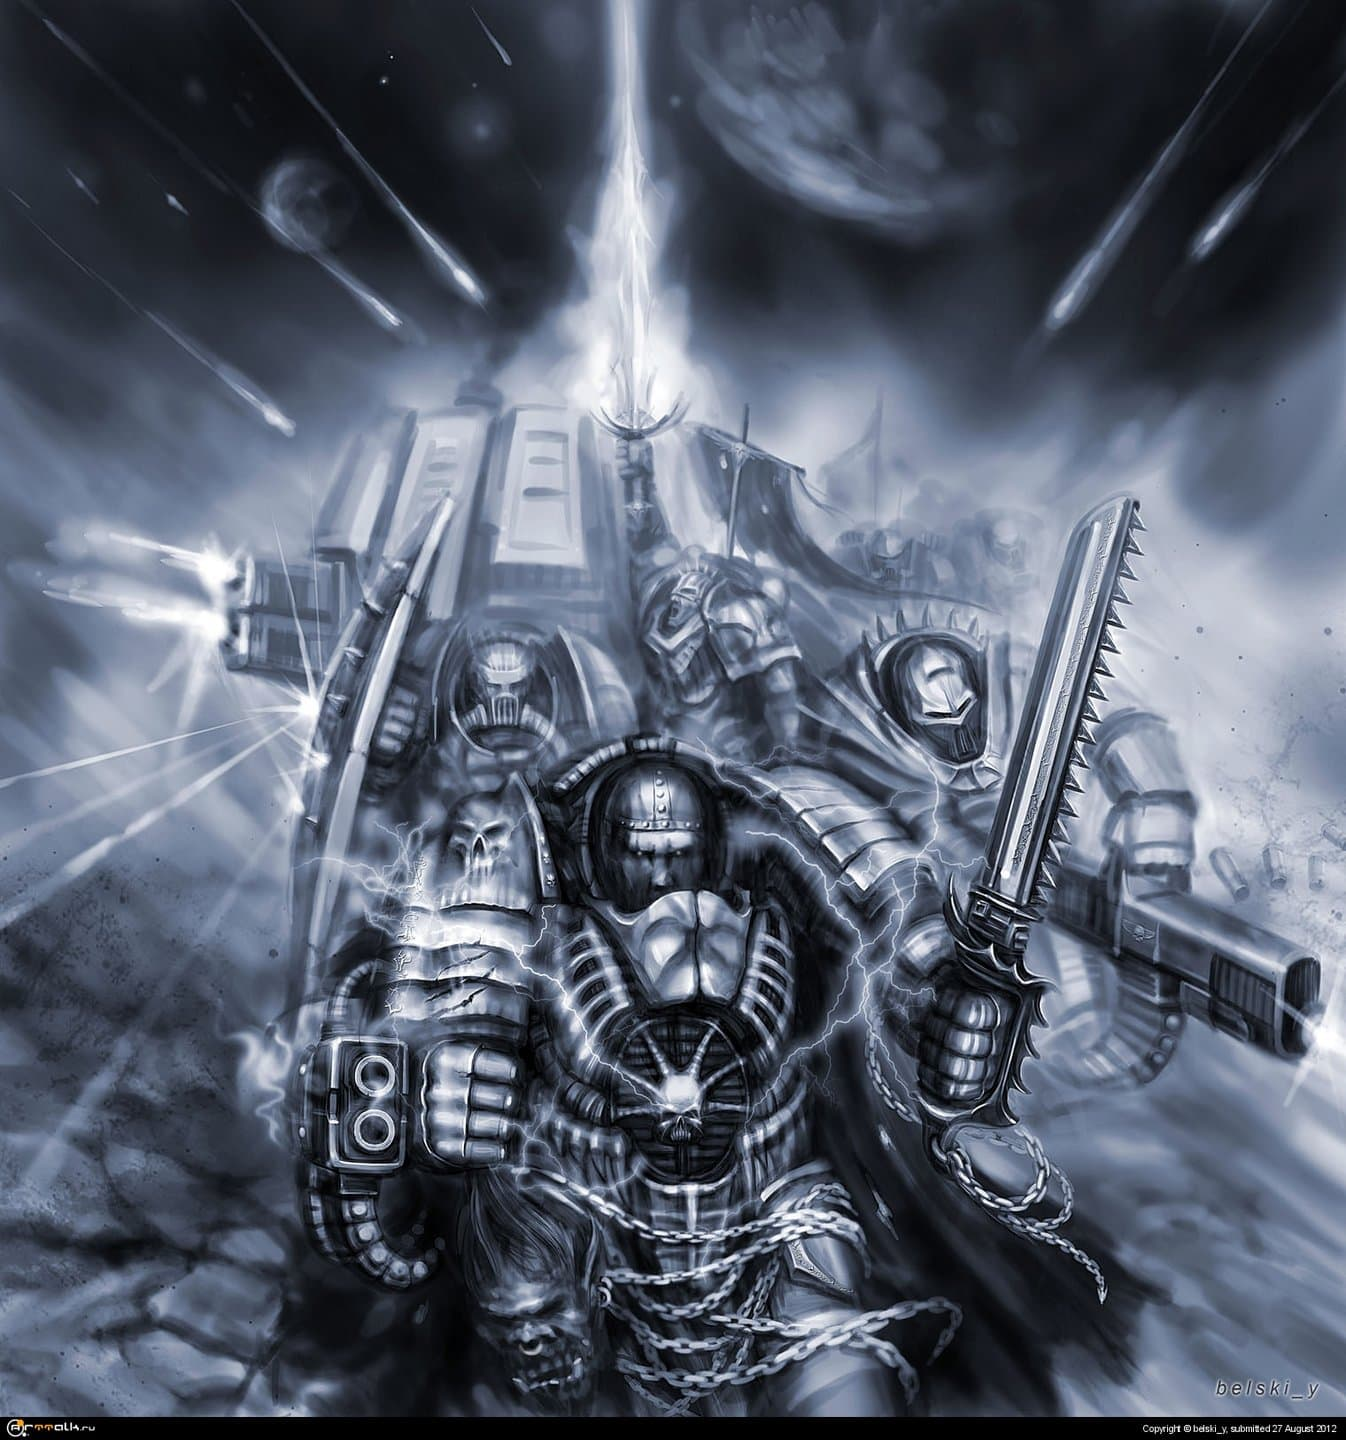 Burn The Mutants! Kill The Heretic! For The Emperor…o_o